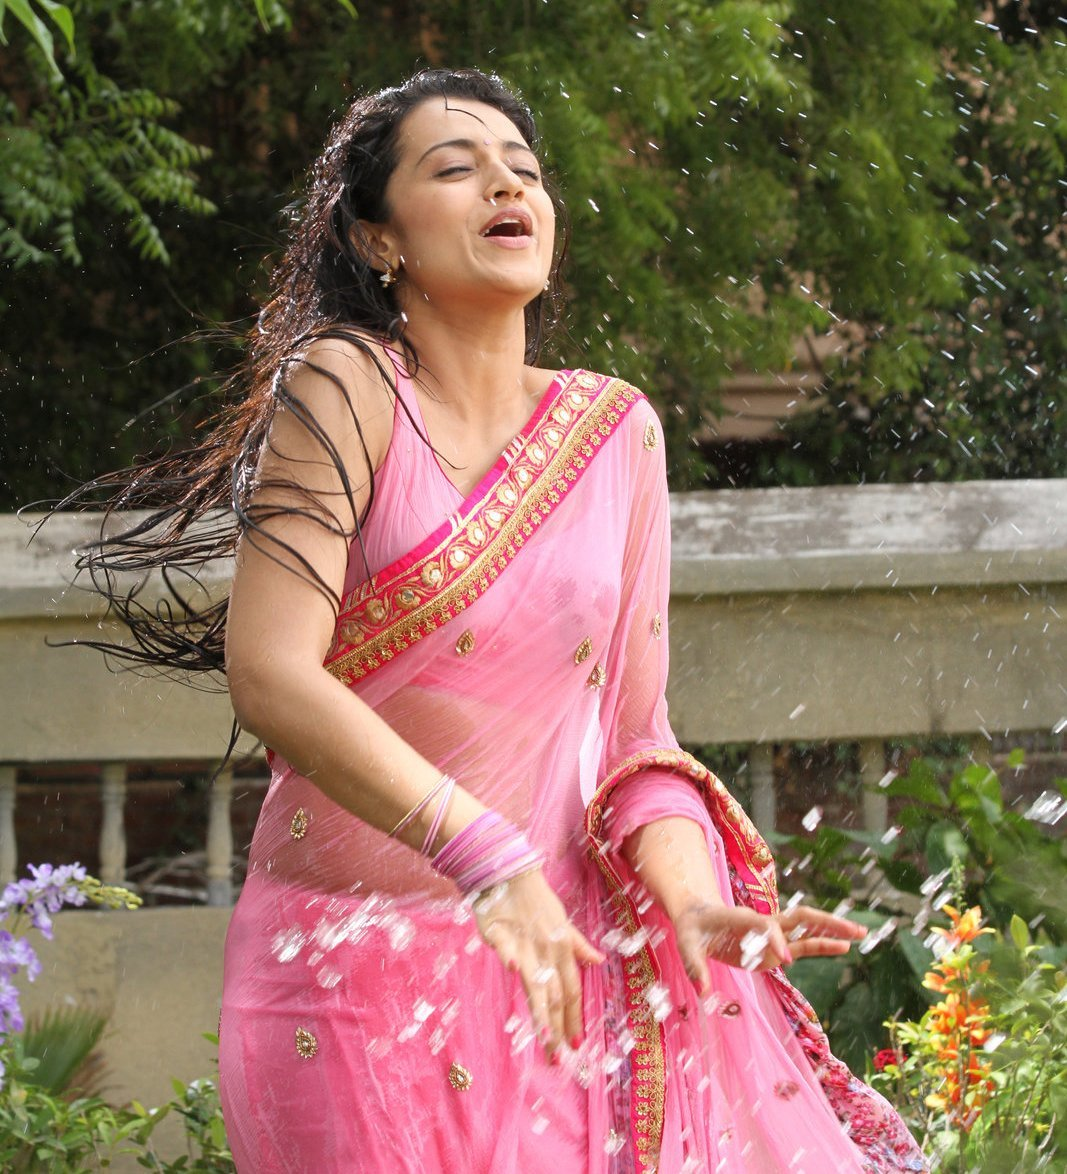 Actress Trisha Krishnan Wet Hot Ultra Hd Photos In Pink Saree From Kalavathi Movie besides Kalki Koechlin Hot Photo Shoot For Maxim Magazine Hd Photos Pics Images Stills Gallery as well 90s Oasis Liam Gallagher IWUJw85GQwH8A in addition Decorating Kids Rooms With Art besides Restoration And Conservation Of Antique Furniture Dublin. on daughter frames